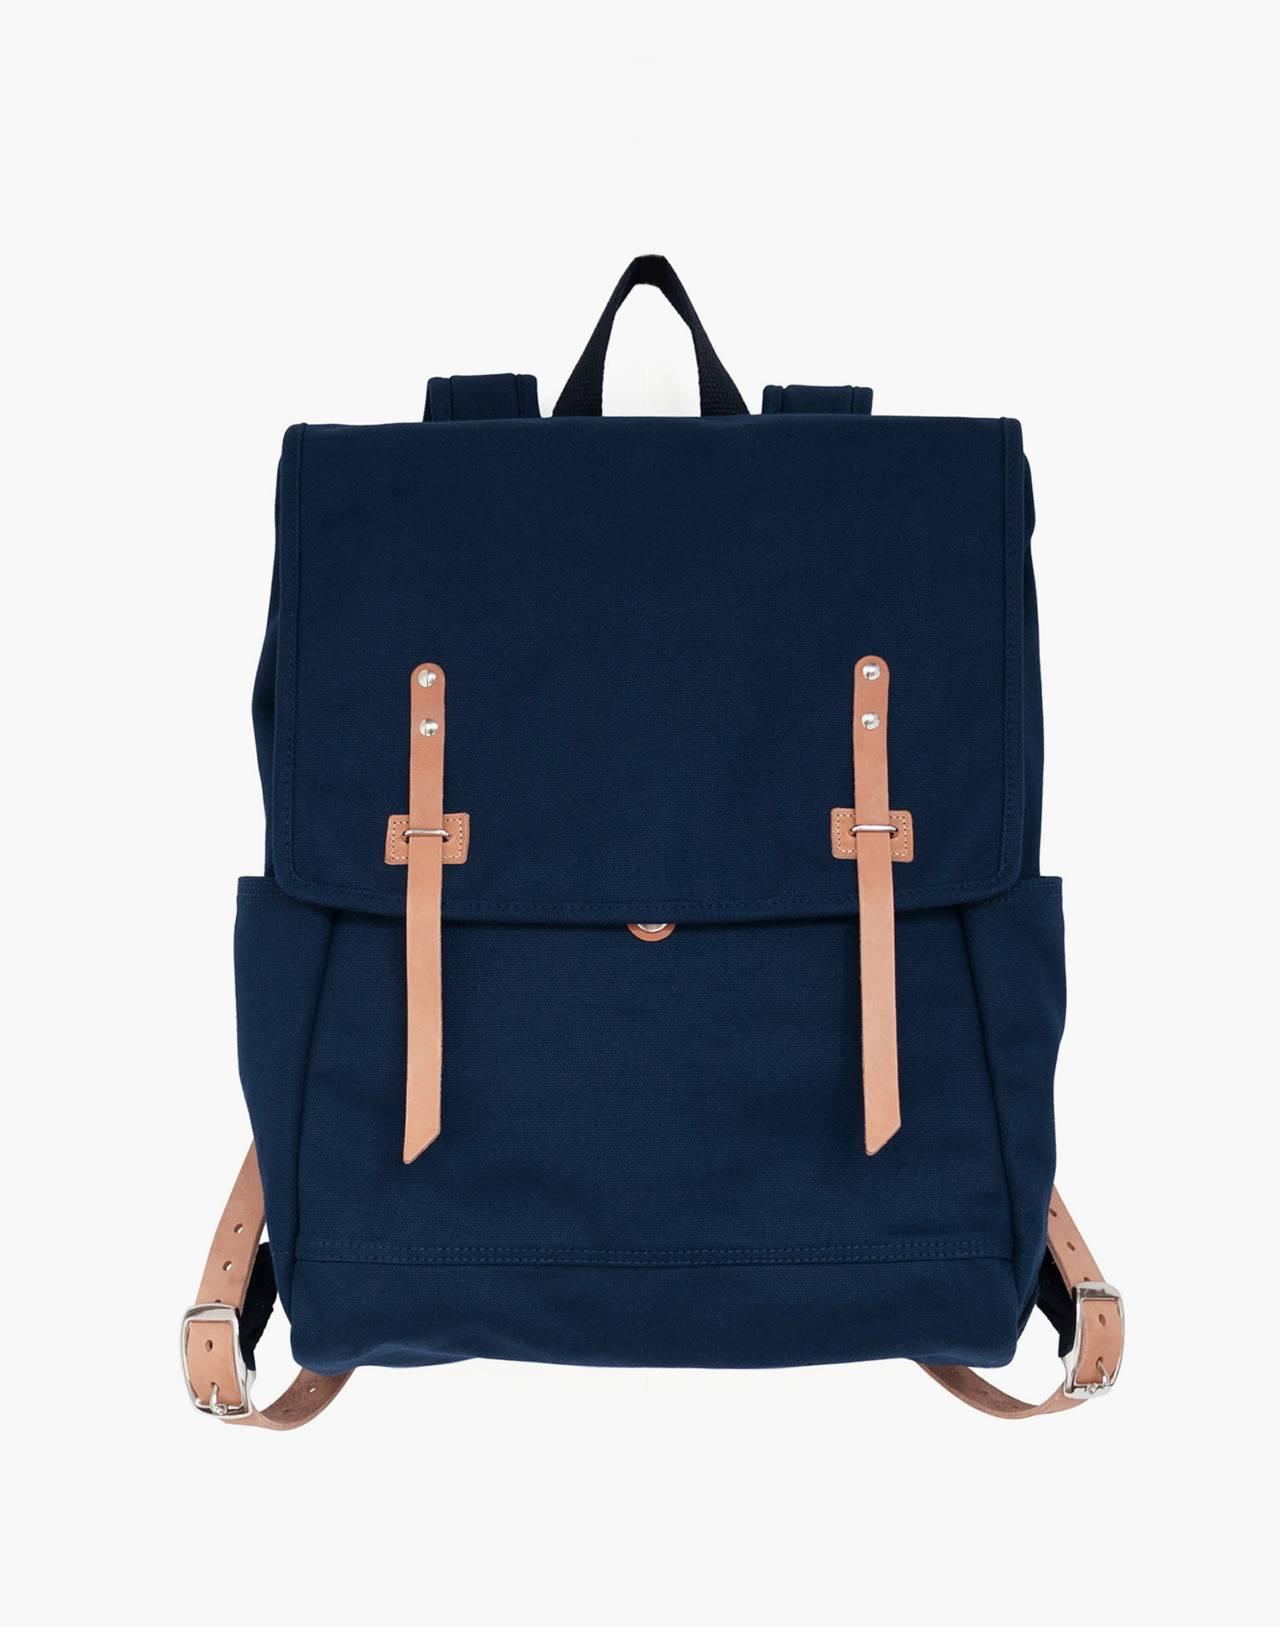 MAKR Canvas Farm Backpack in navy image 1